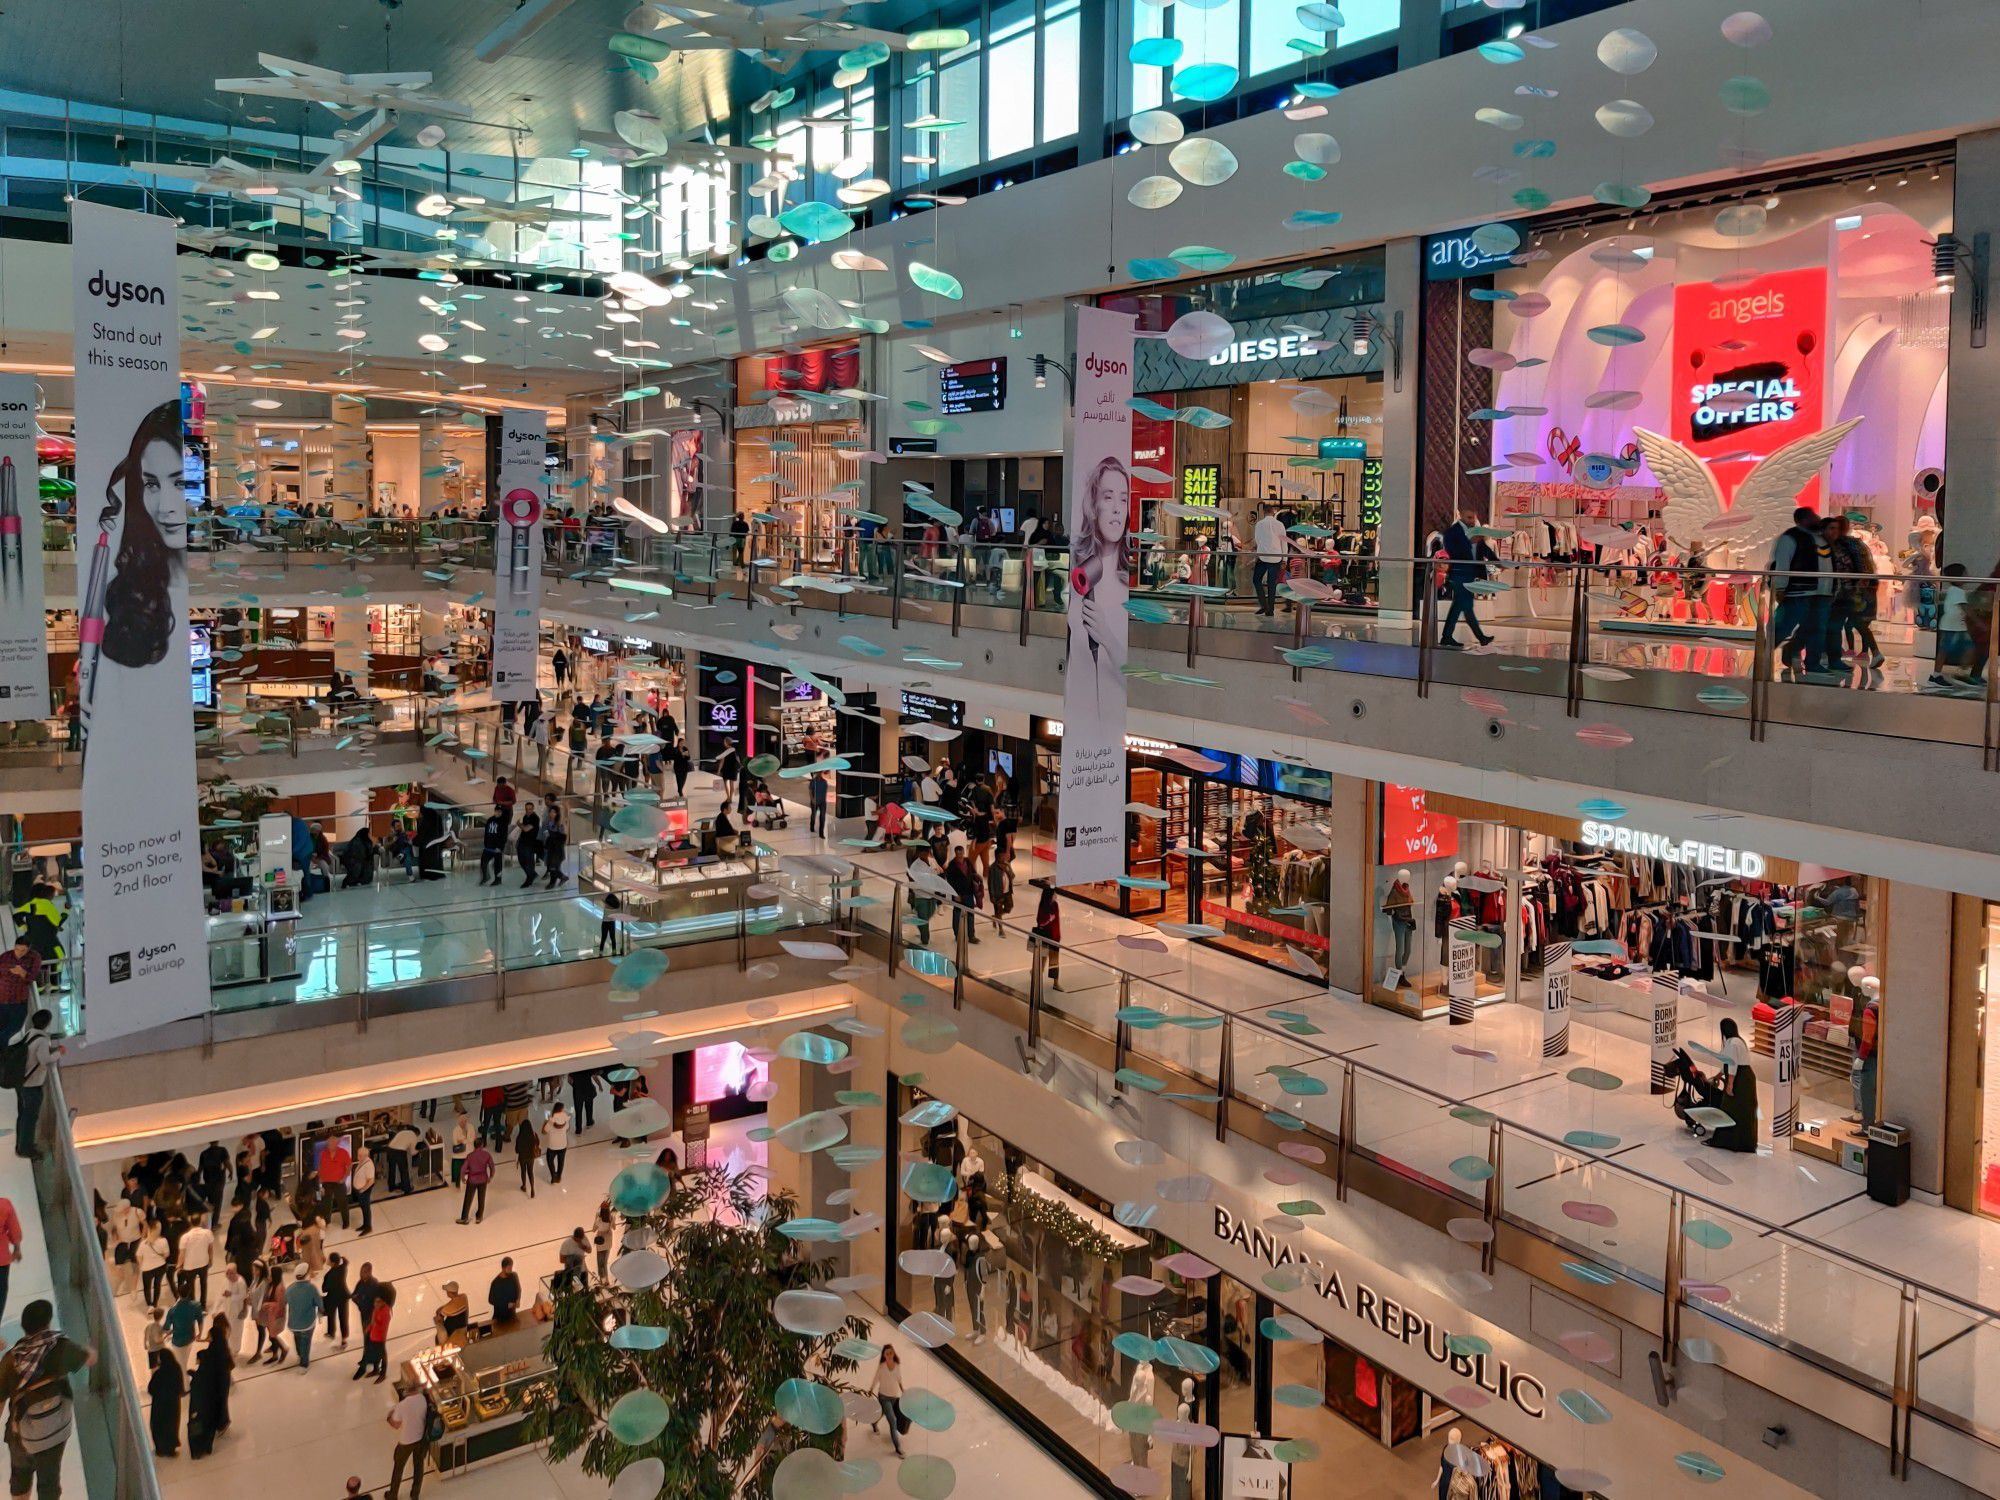 Improving Retail Space With Digital Signage